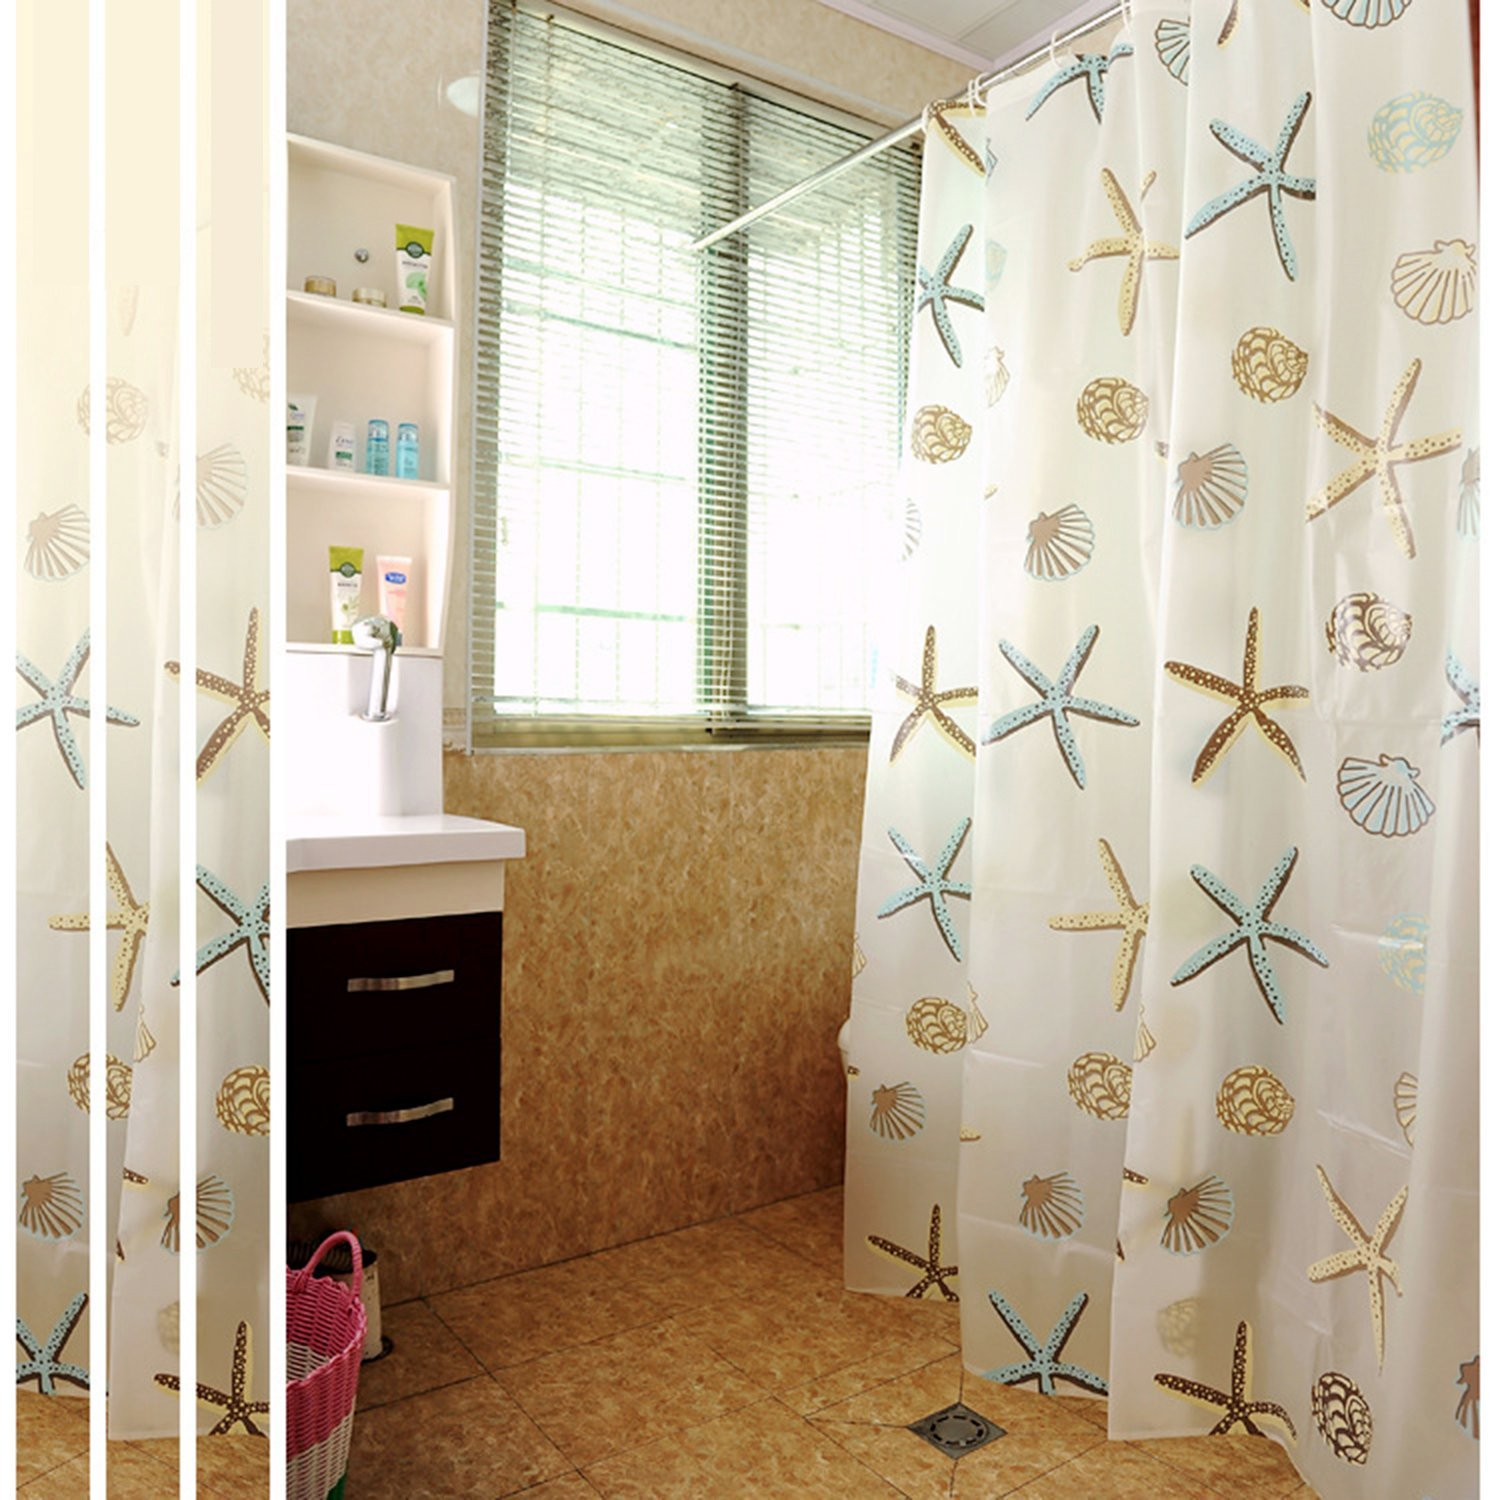 Get Quotations Bathroom Curtain Decorative PEVA Mold Mildew Free Water Repellent Shower With Hooks 70